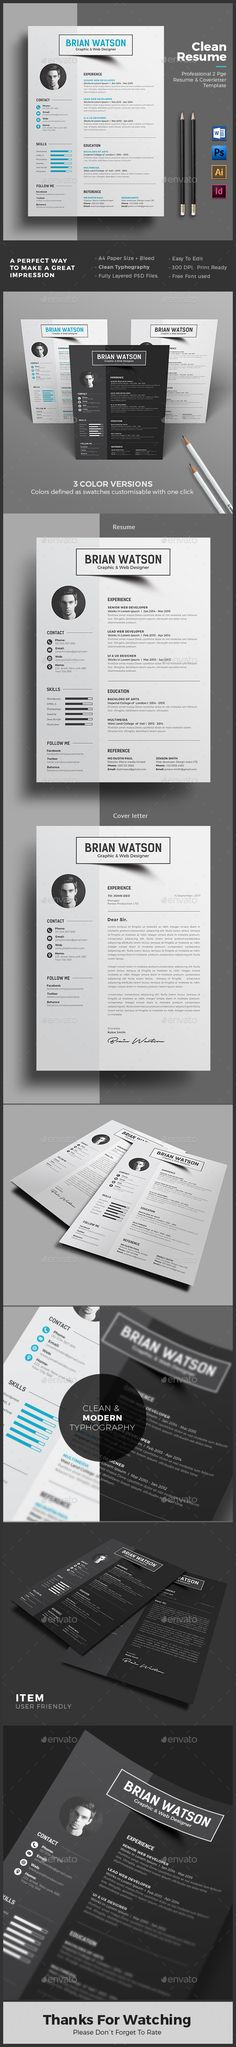 Chef Resume Resume cv - one page resume format download